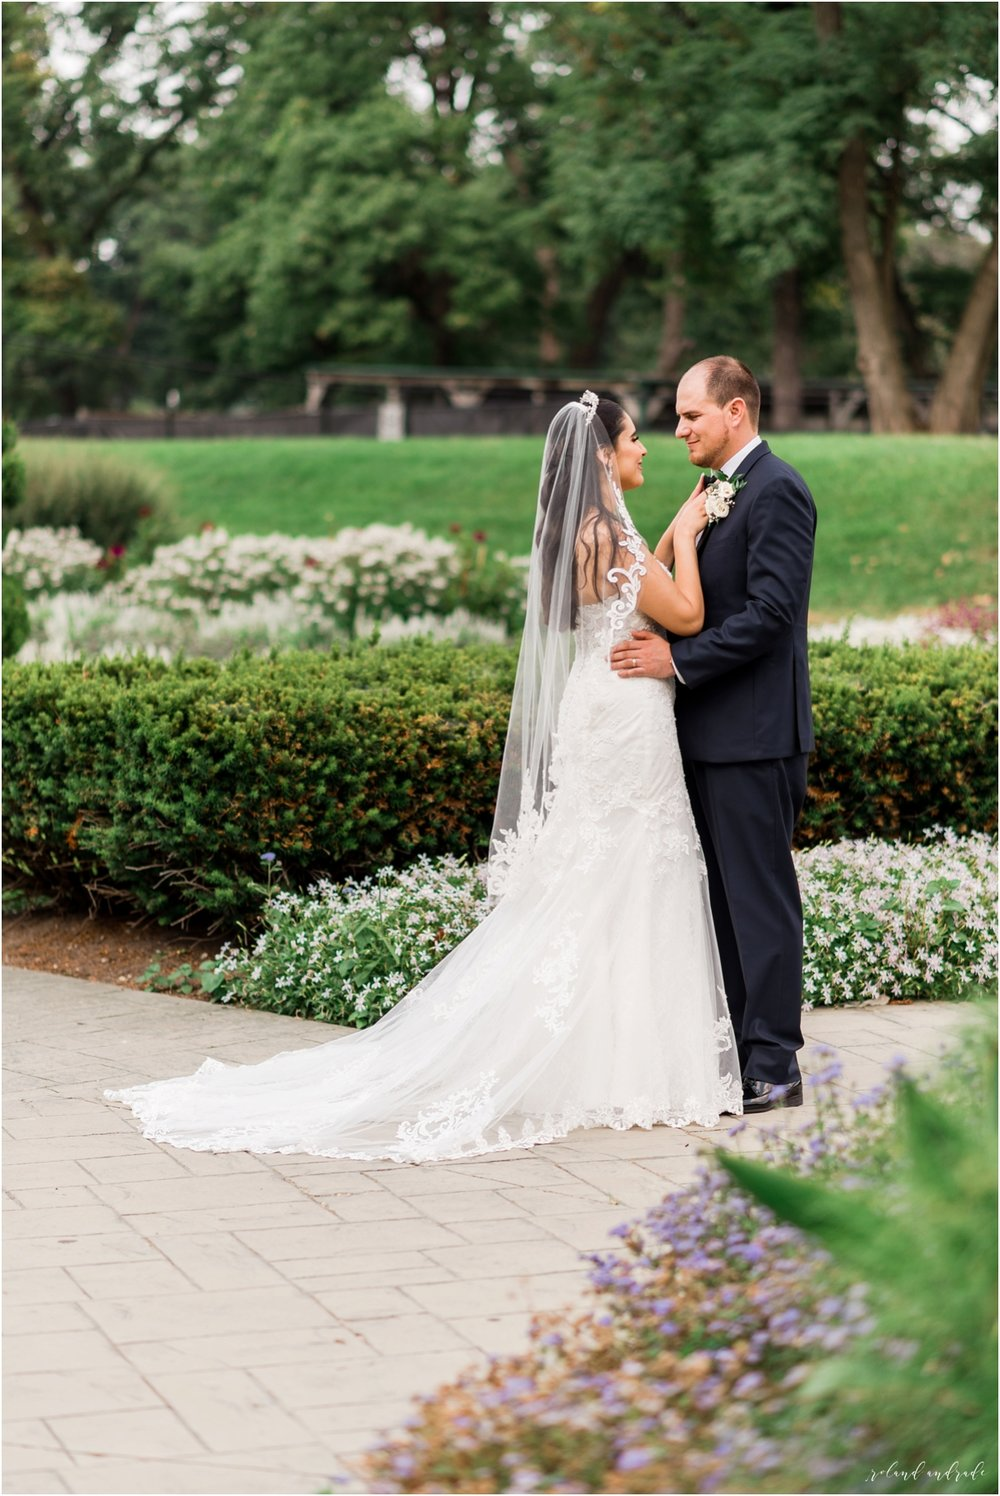 Gaslight Manor Wedding, Aurora Wedding, Green Wedding, Chicago Wedding Photographer, Aurora Wedding Photographer_0036.jpg